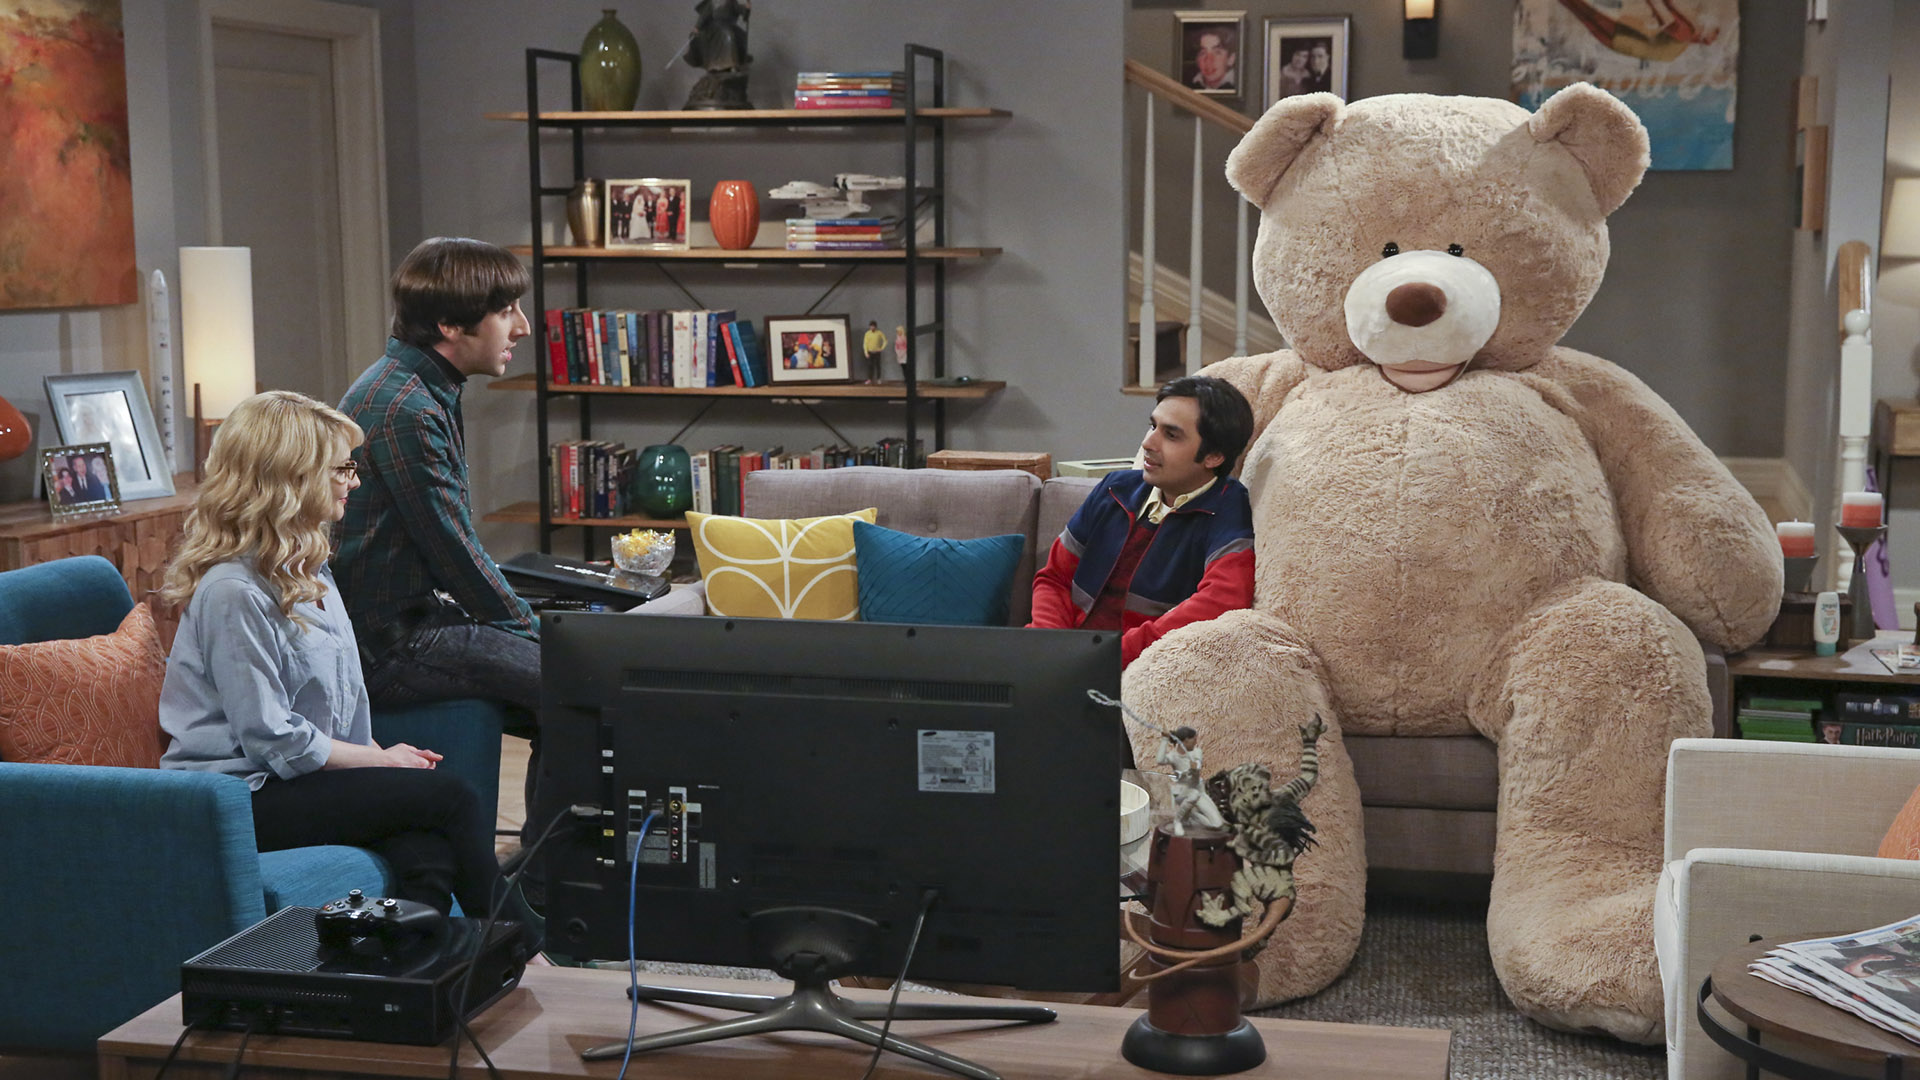 Snuggle up with your favorite teddy bear.